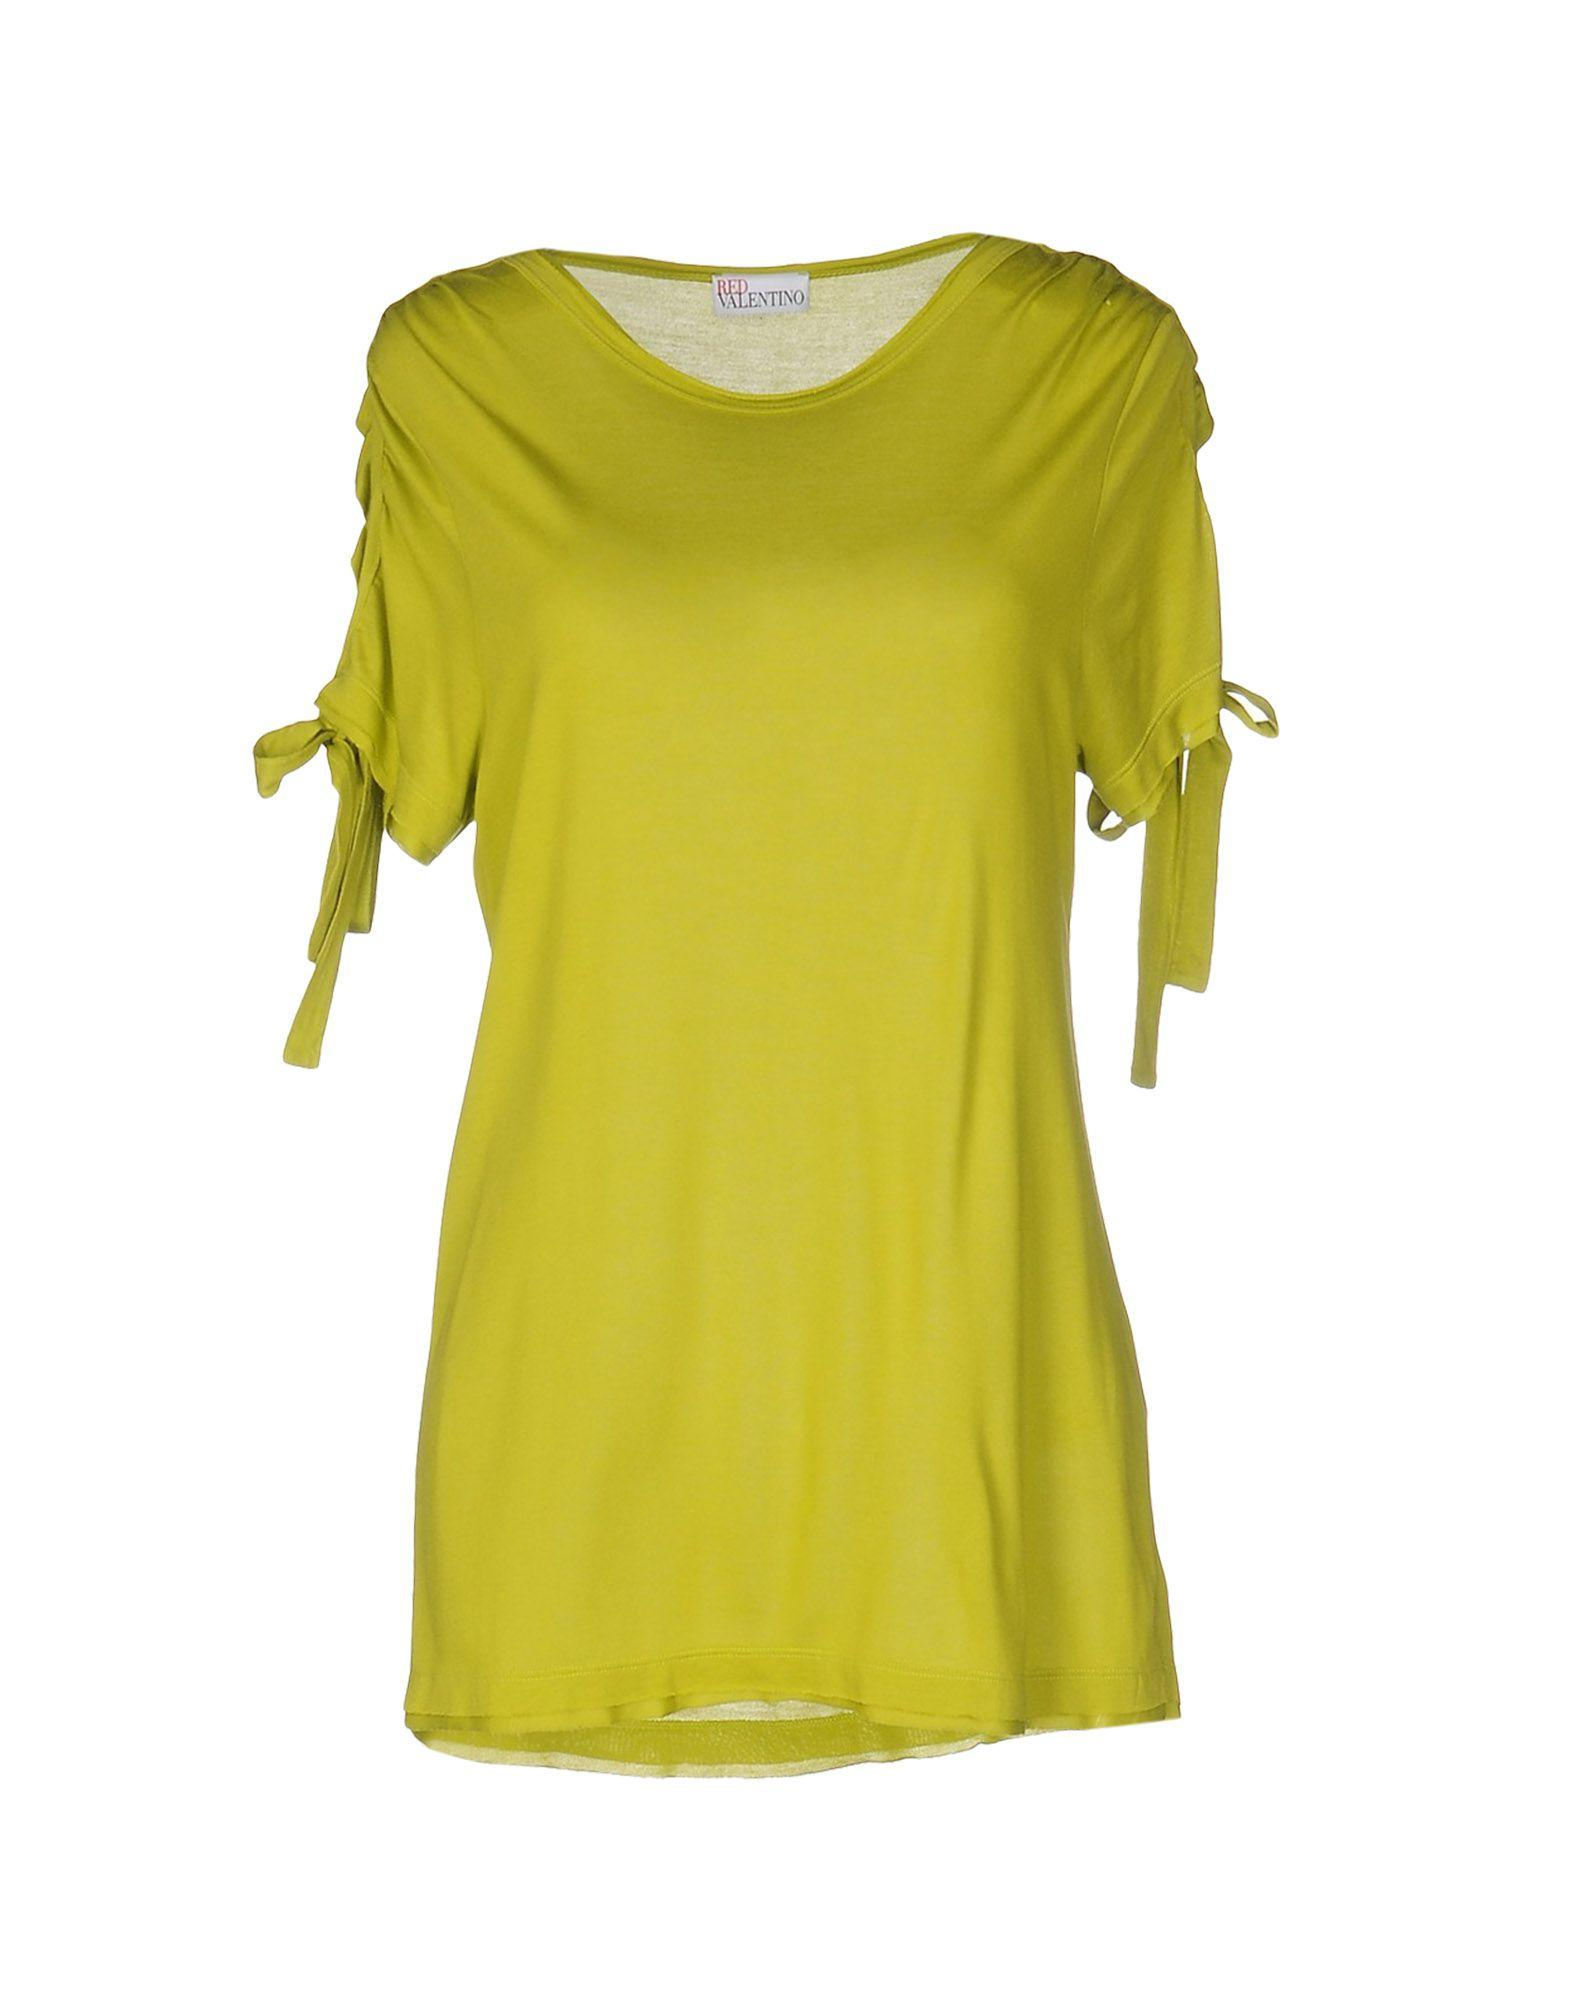 Red valentino t shirt in green save 50 lyst for Red valentino t shirt